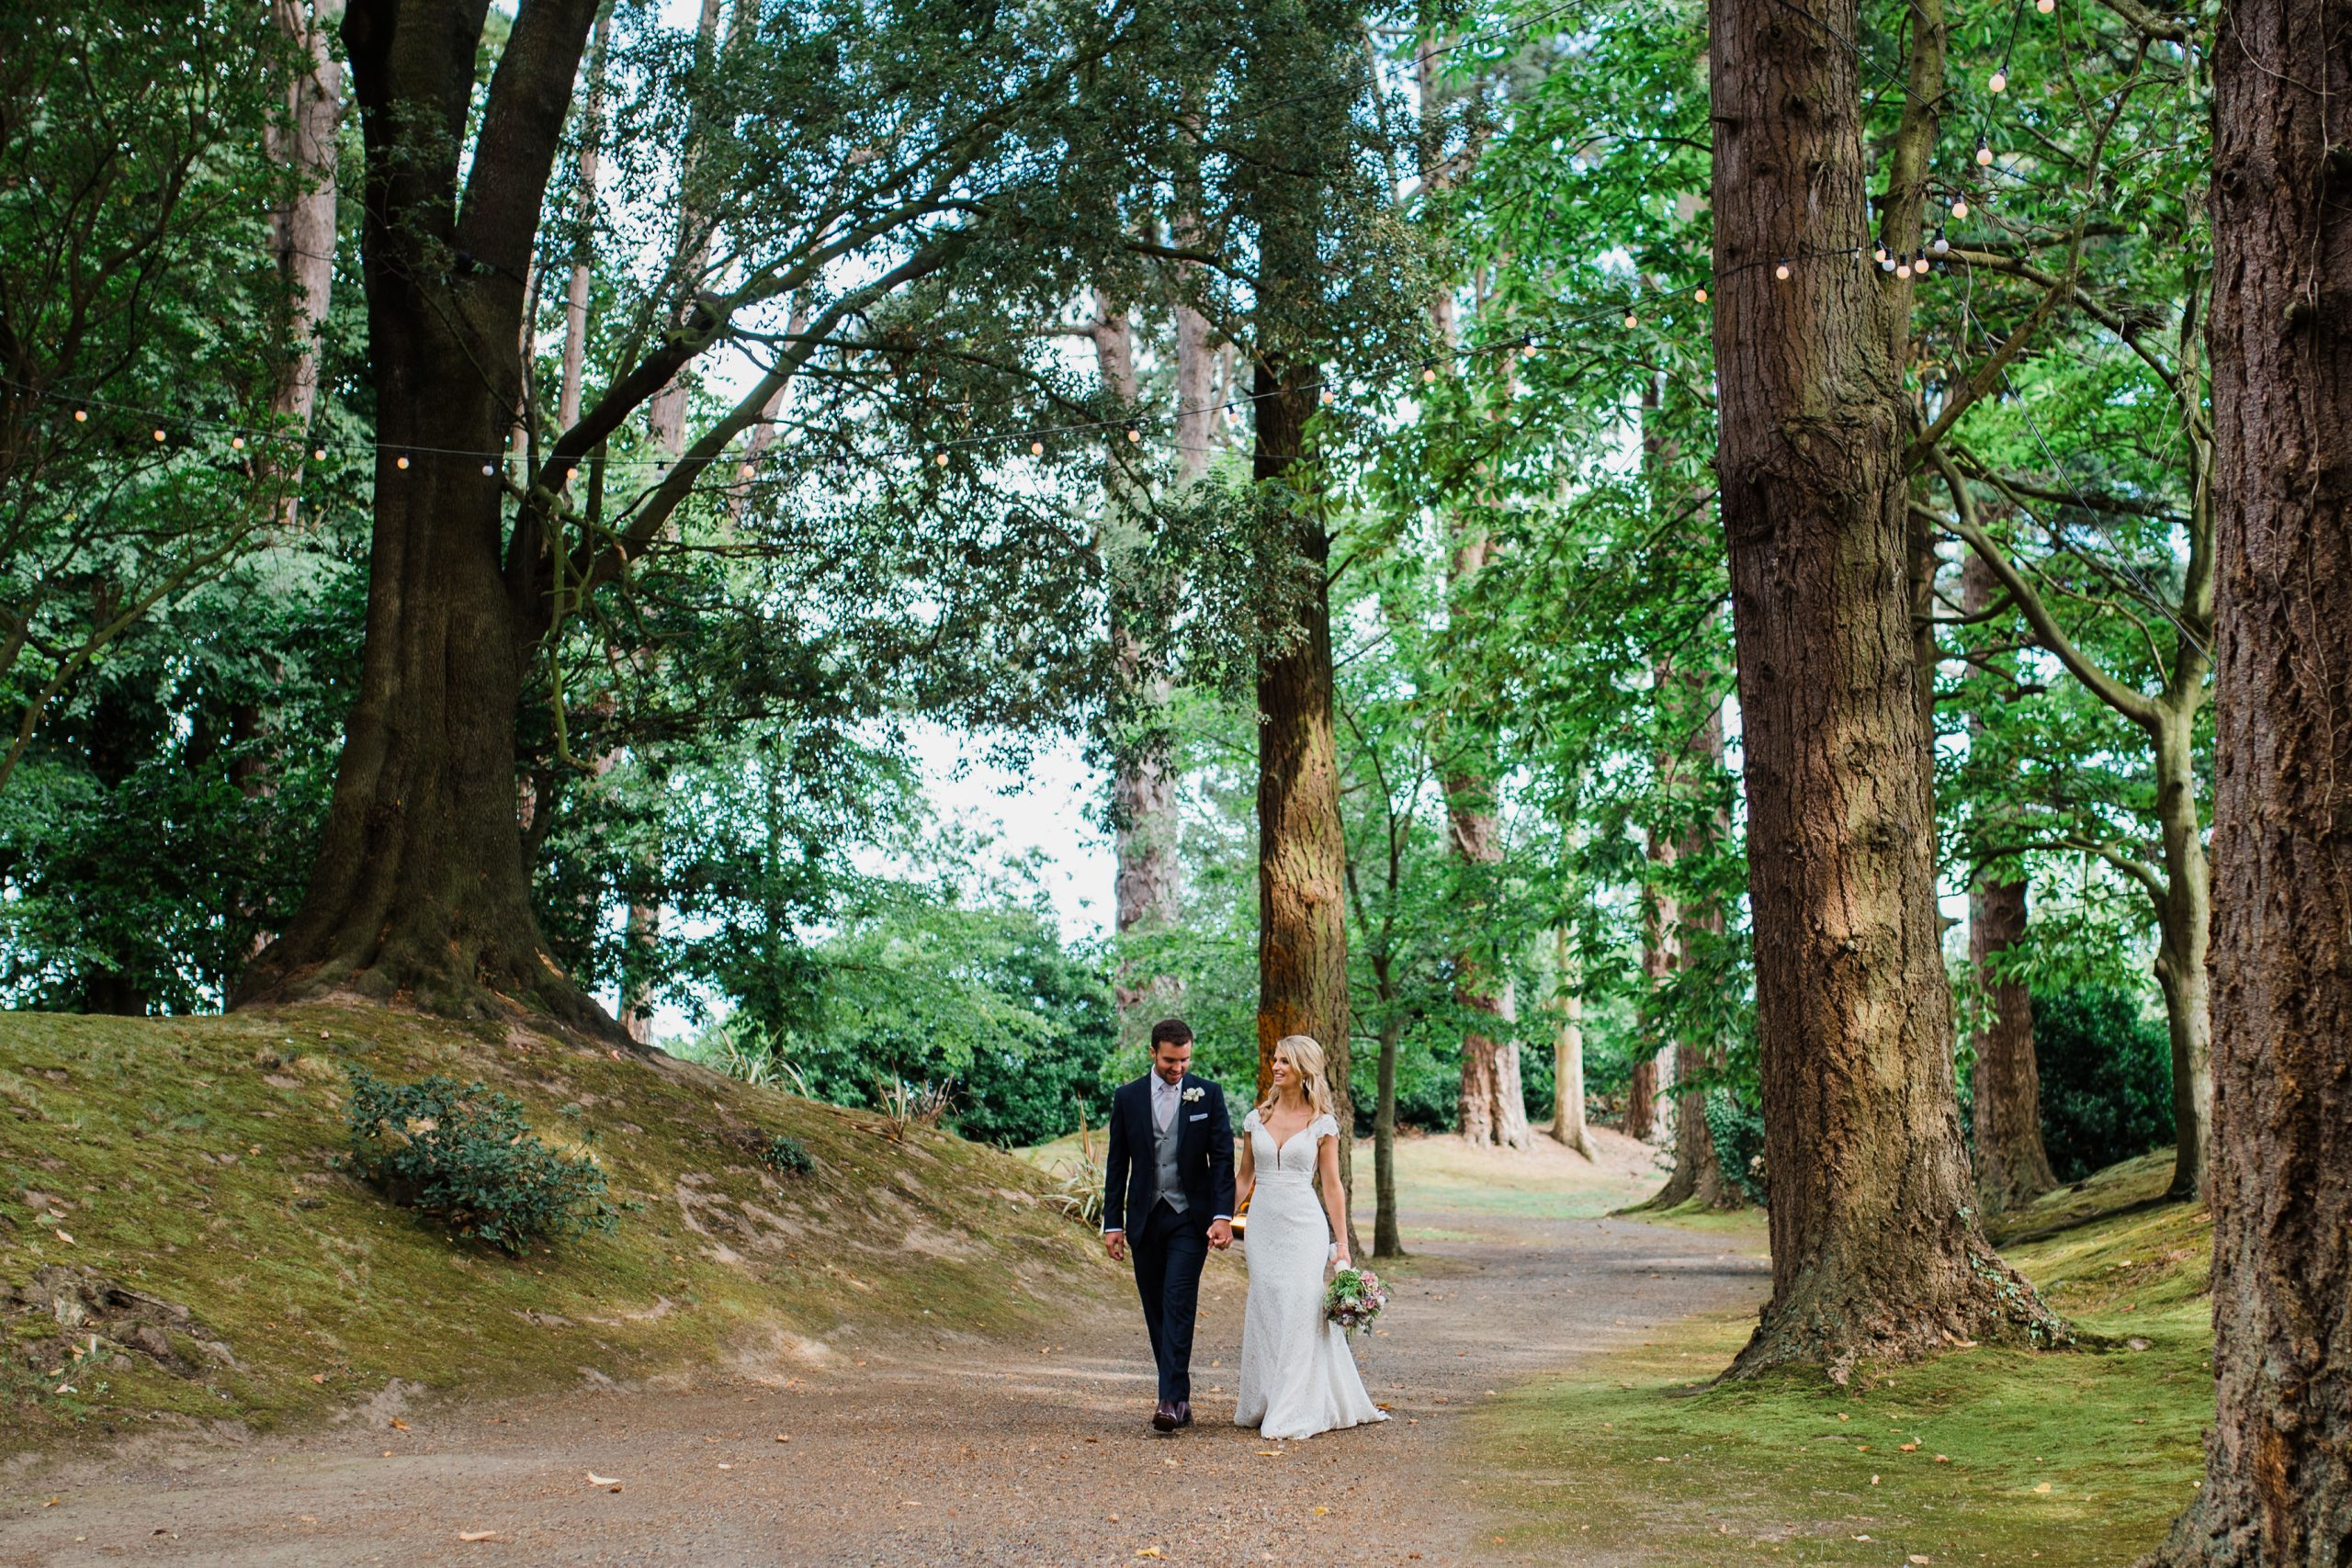 Bride and groom walking together through woods